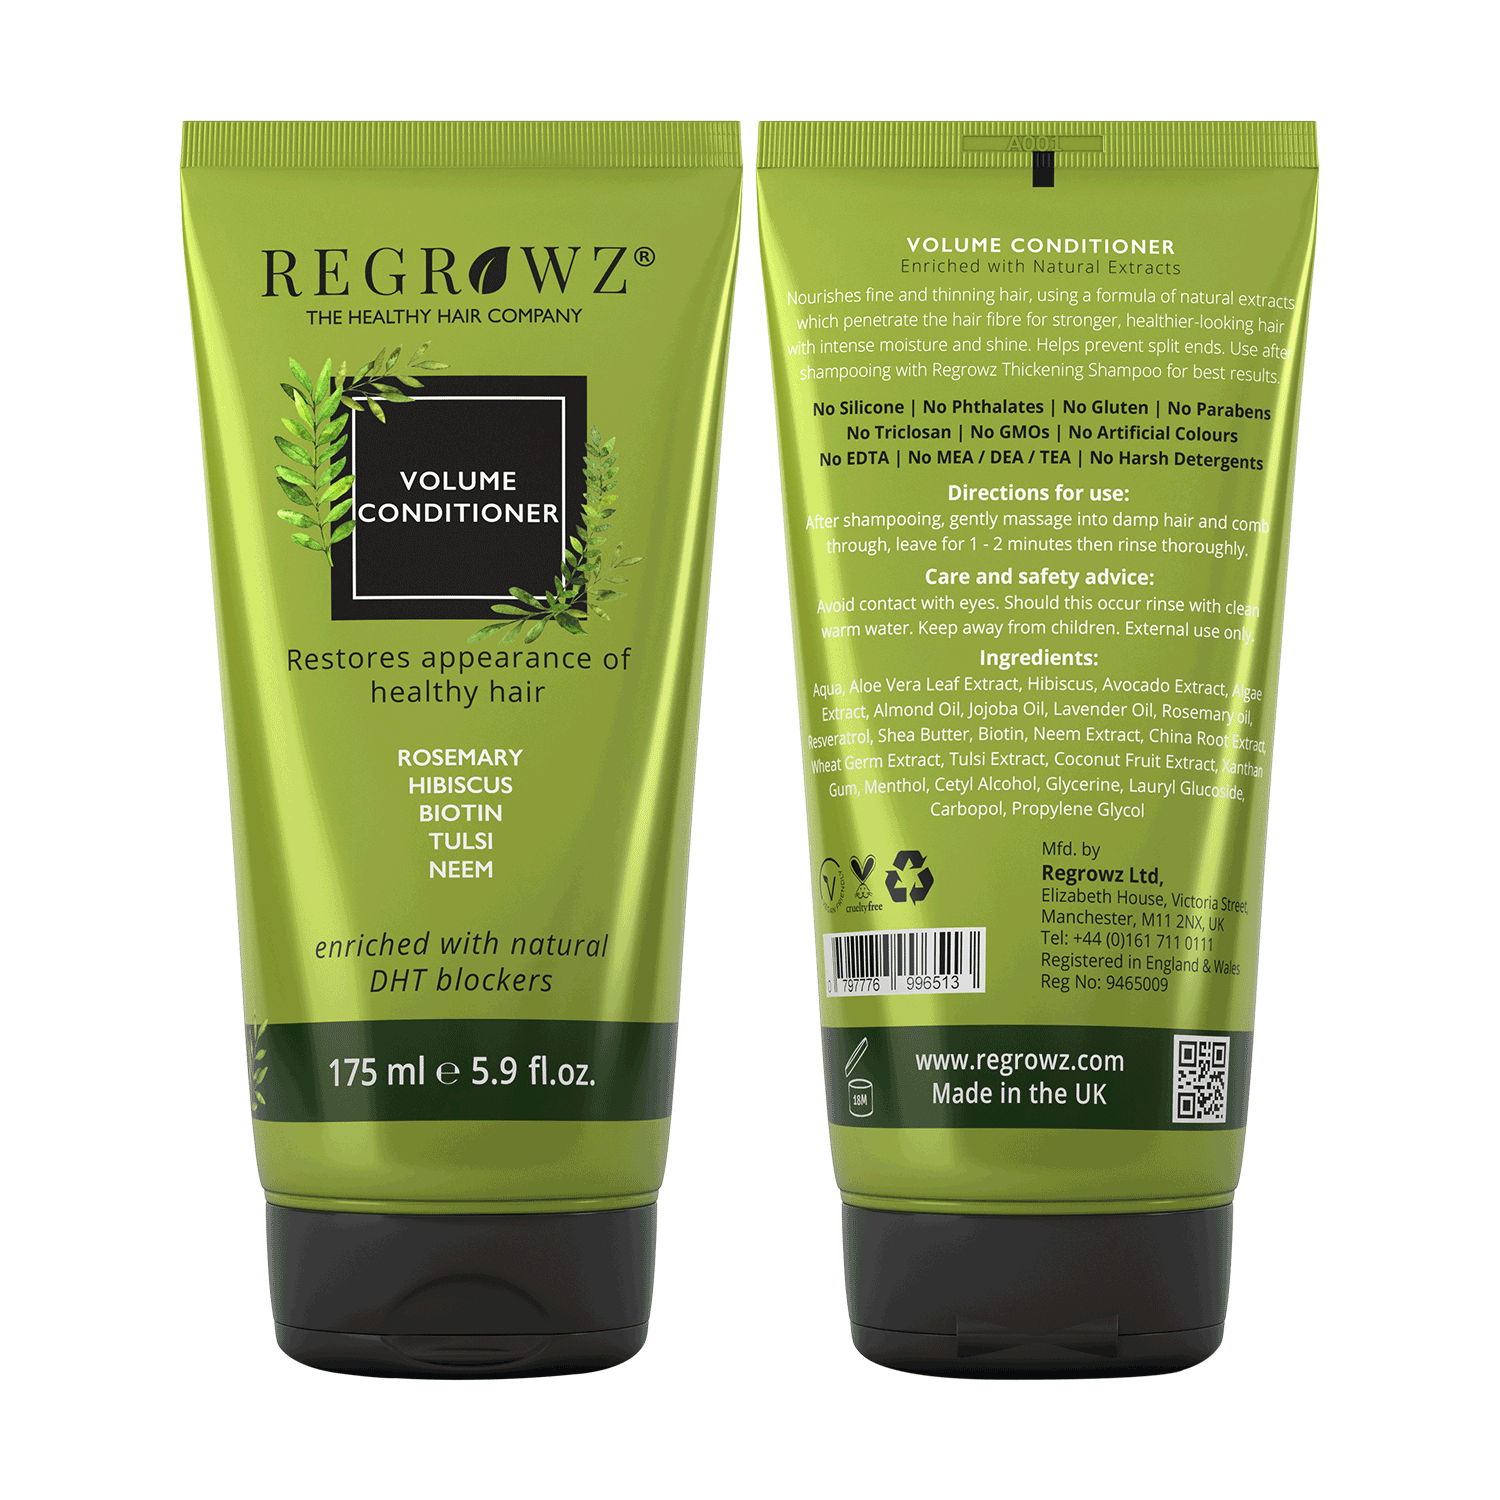 Regorwz Hair Conditioner